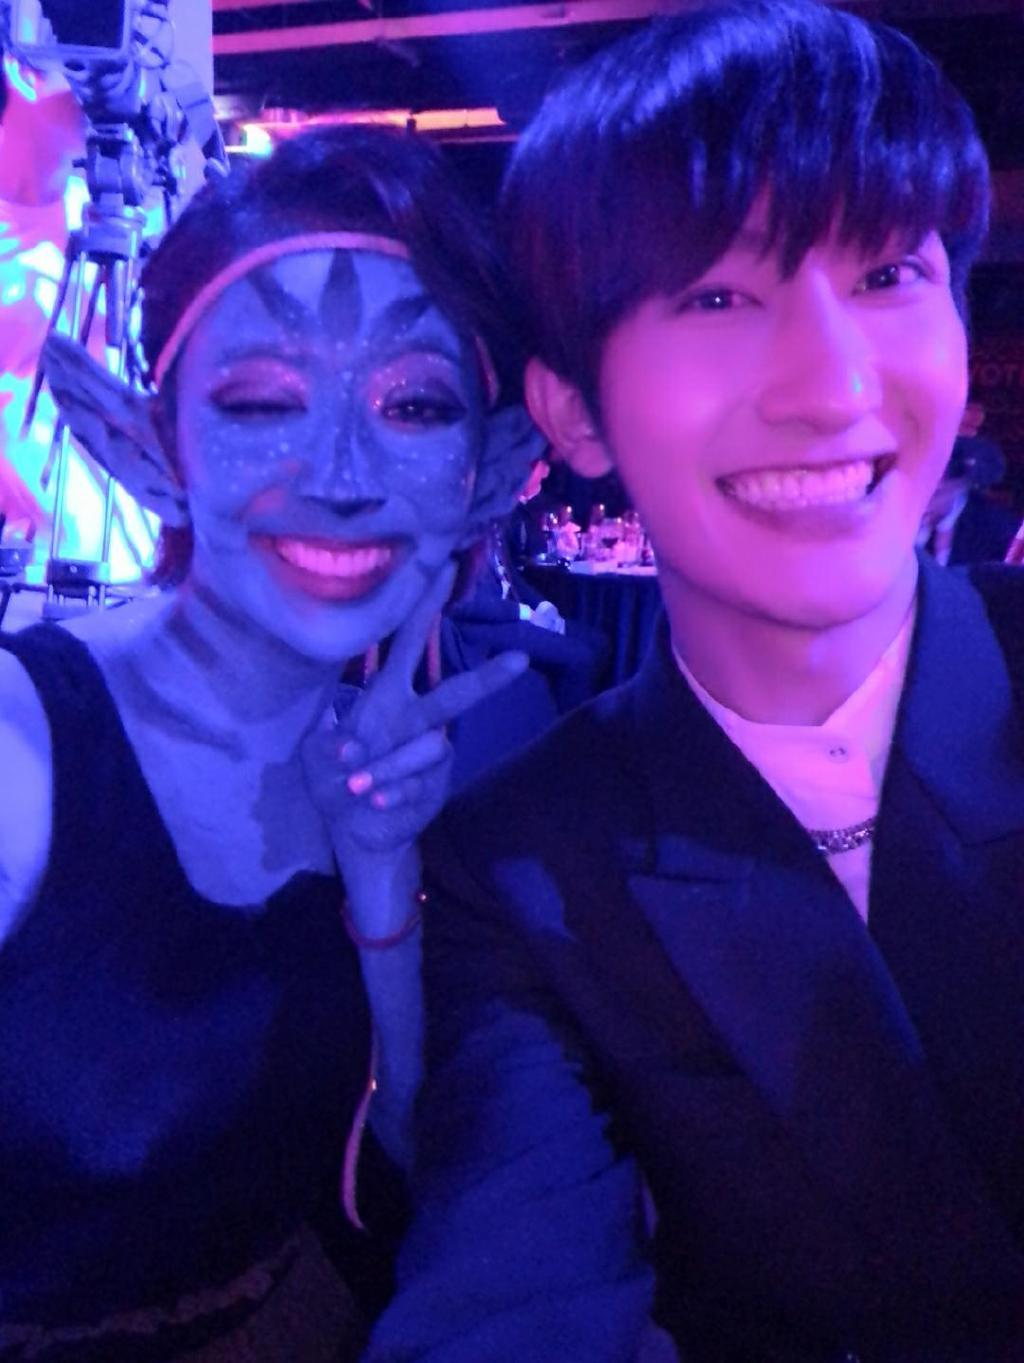 ☆PHOTO] SM family posts pictures from SM Halloween party (Part 2!)